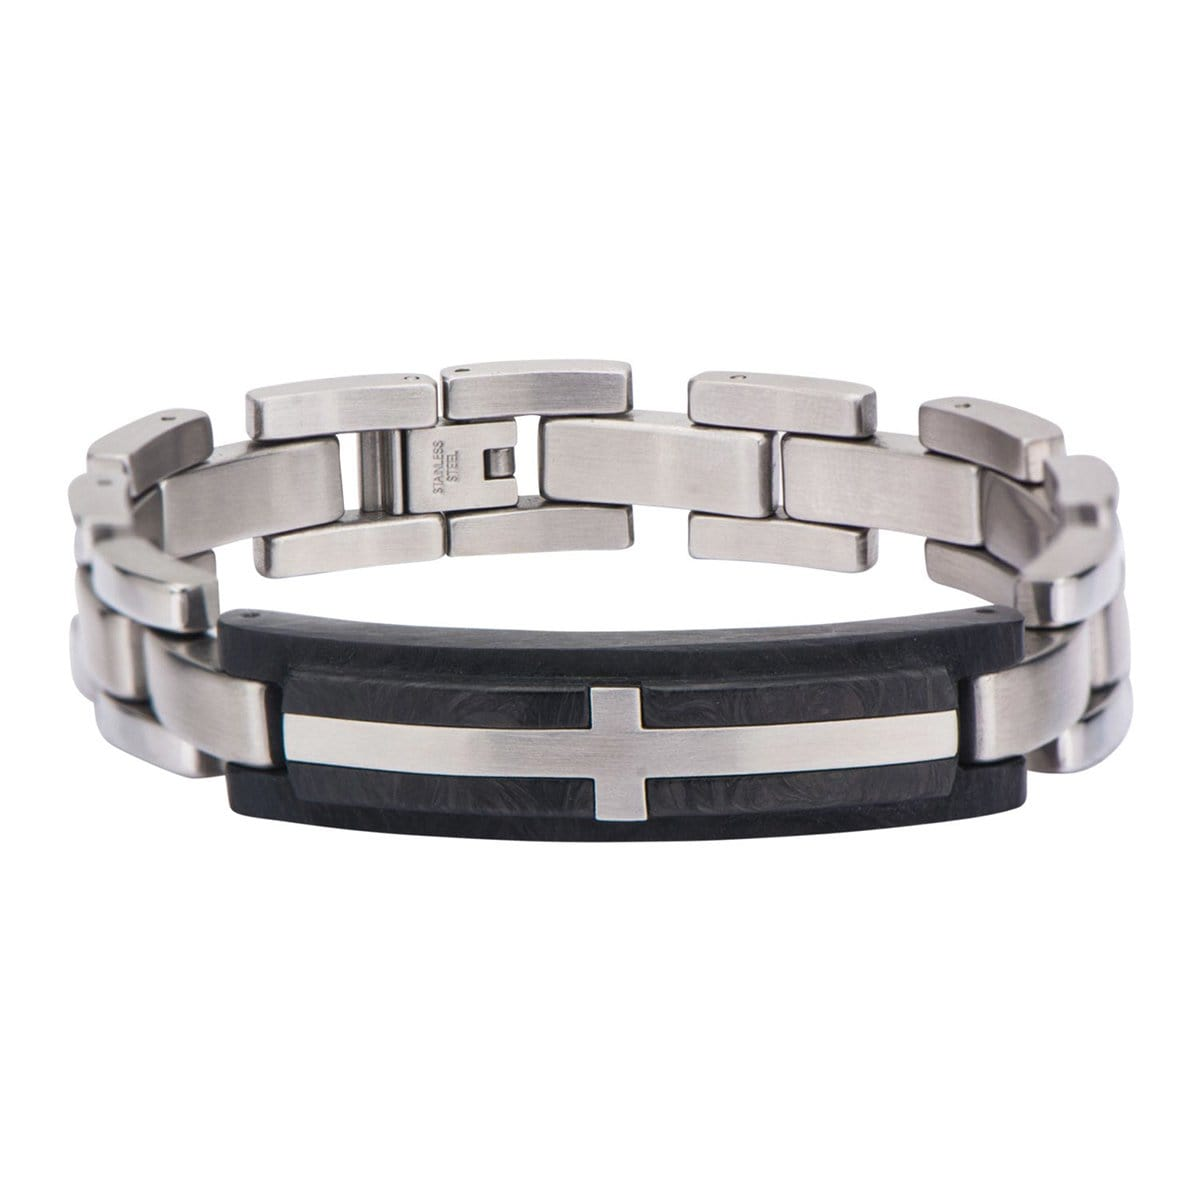 Silver Stainless Steel & Black Carbon Graphite with Inlayed Cross ID Bracelet